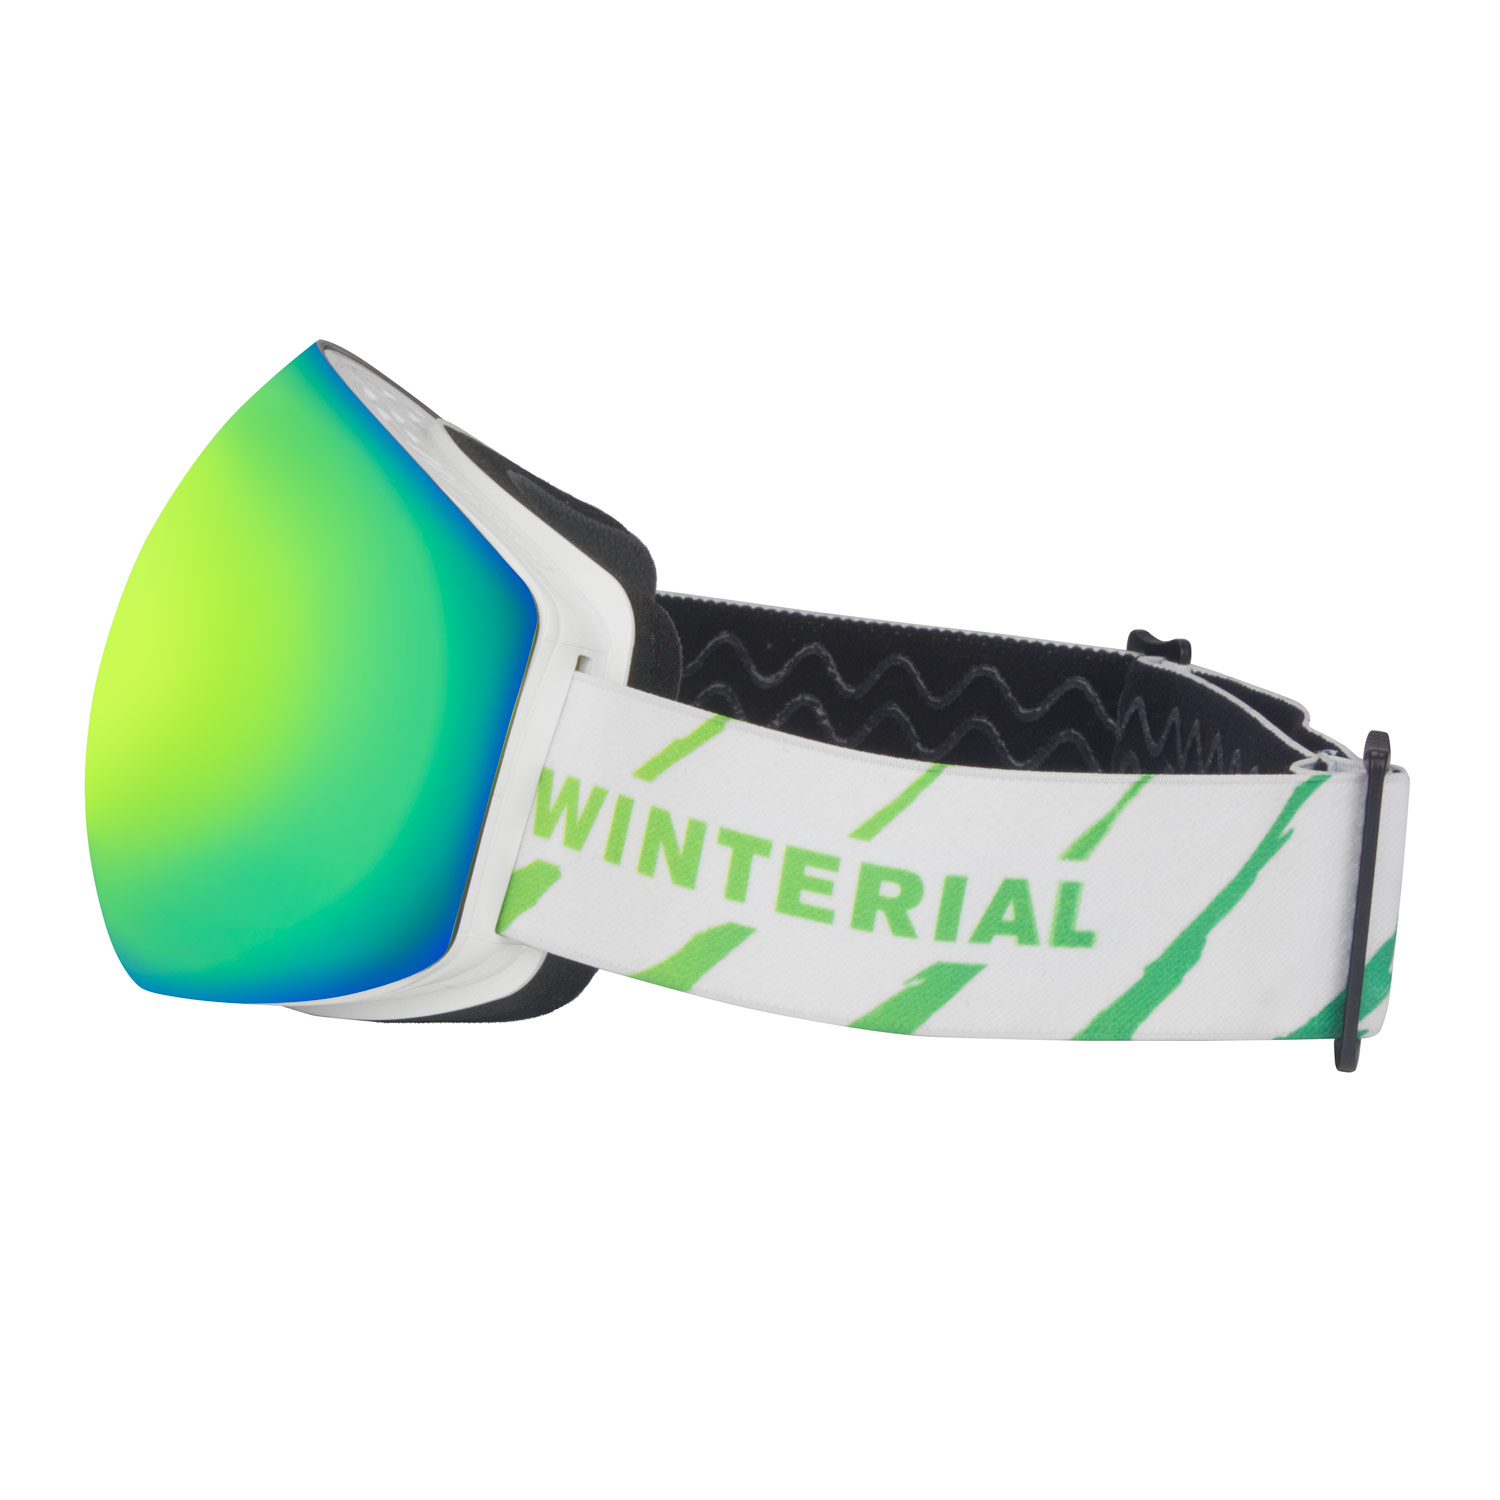 Winterial Frameless Snowboard   Ski Goggles + Removable Lens by Winteiral